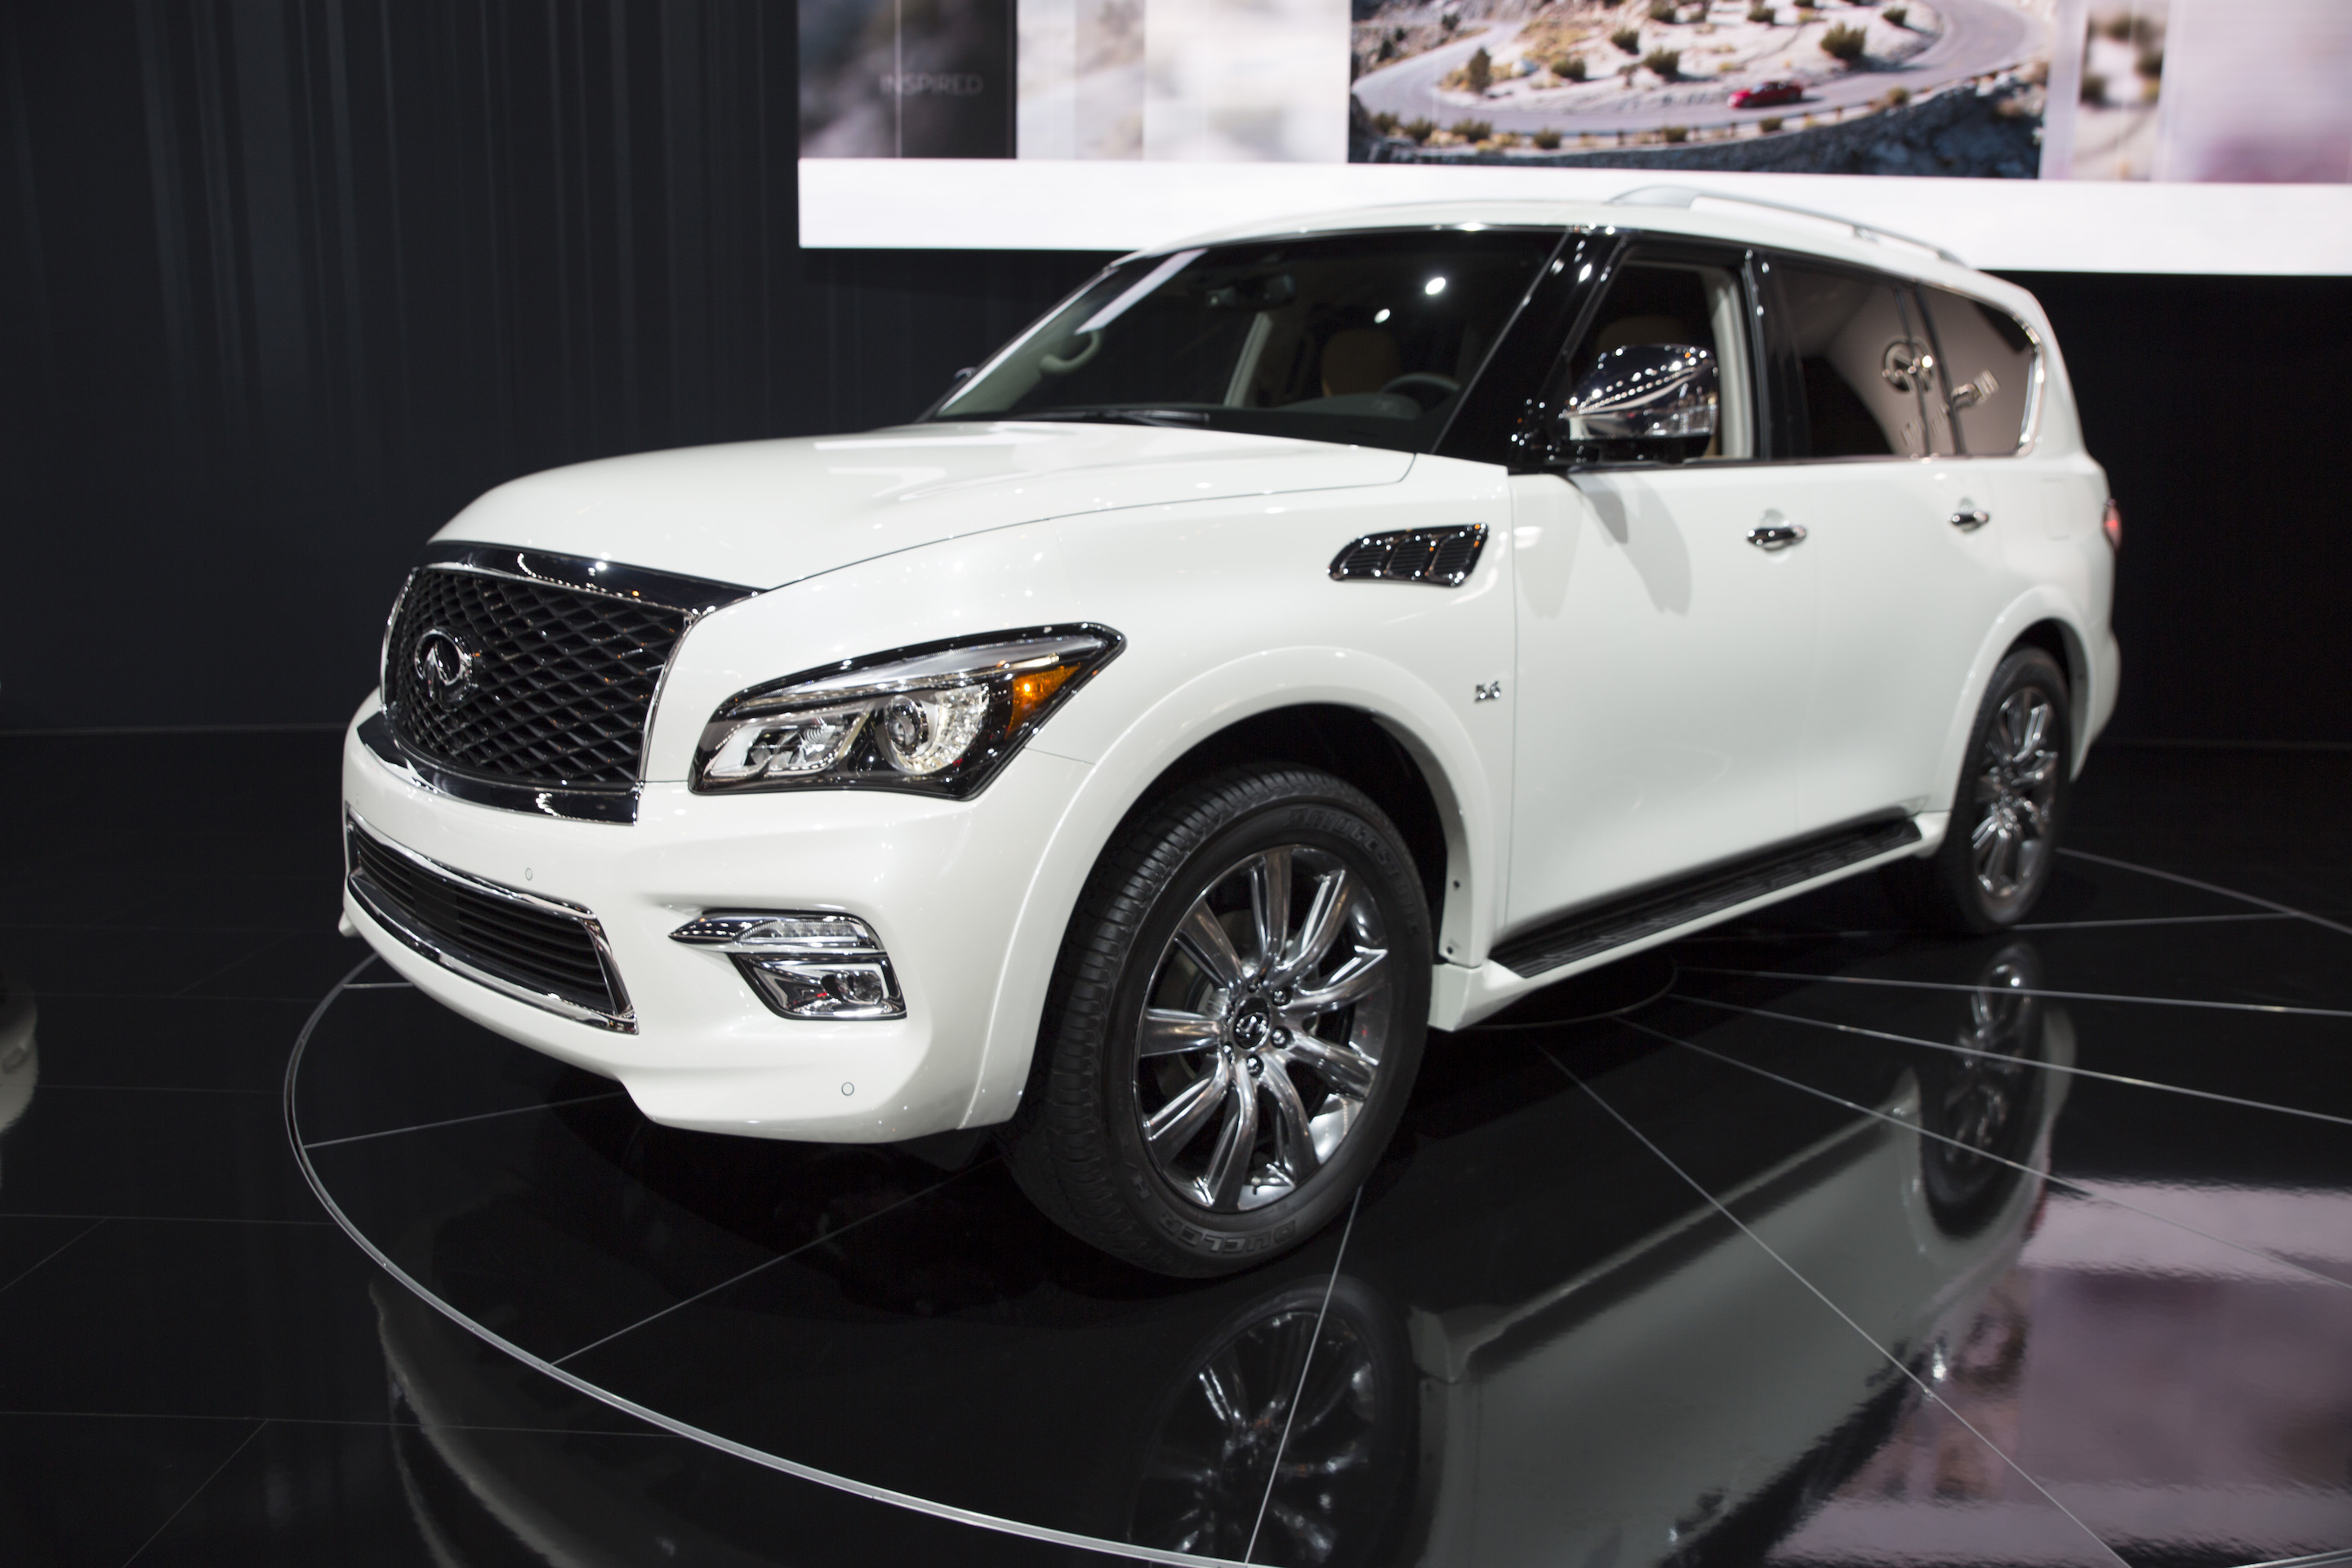 infiniti debuts q50 and qx80 signature editions at 2017 chicago auto show automotive rhythms. Black Bedroom Furniture Sets. Home Design Ideas